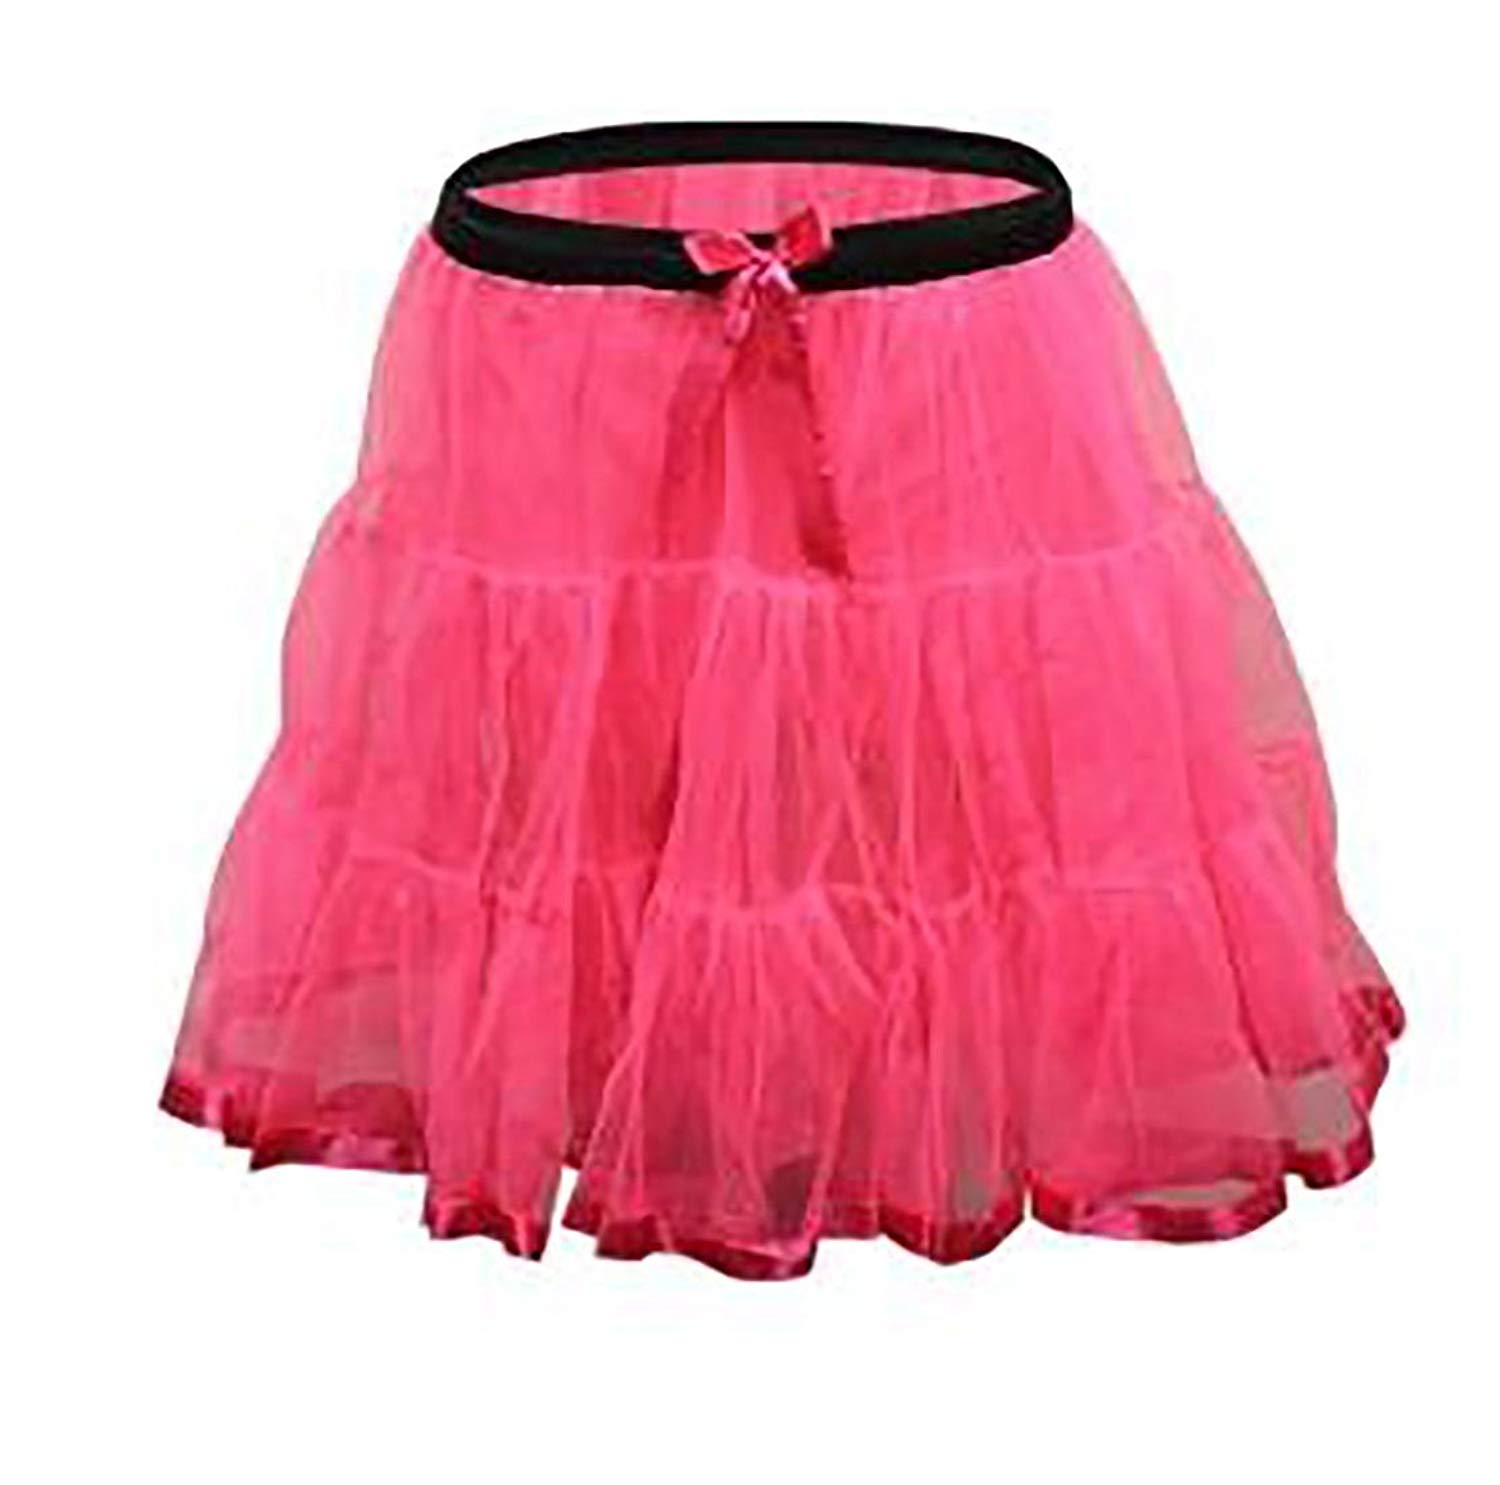 Rimi Hanger Girls 2 Layer Petticoat Tutu Skirt Children Party Dance Wear Fancy Mini Skirt 8-12 Years